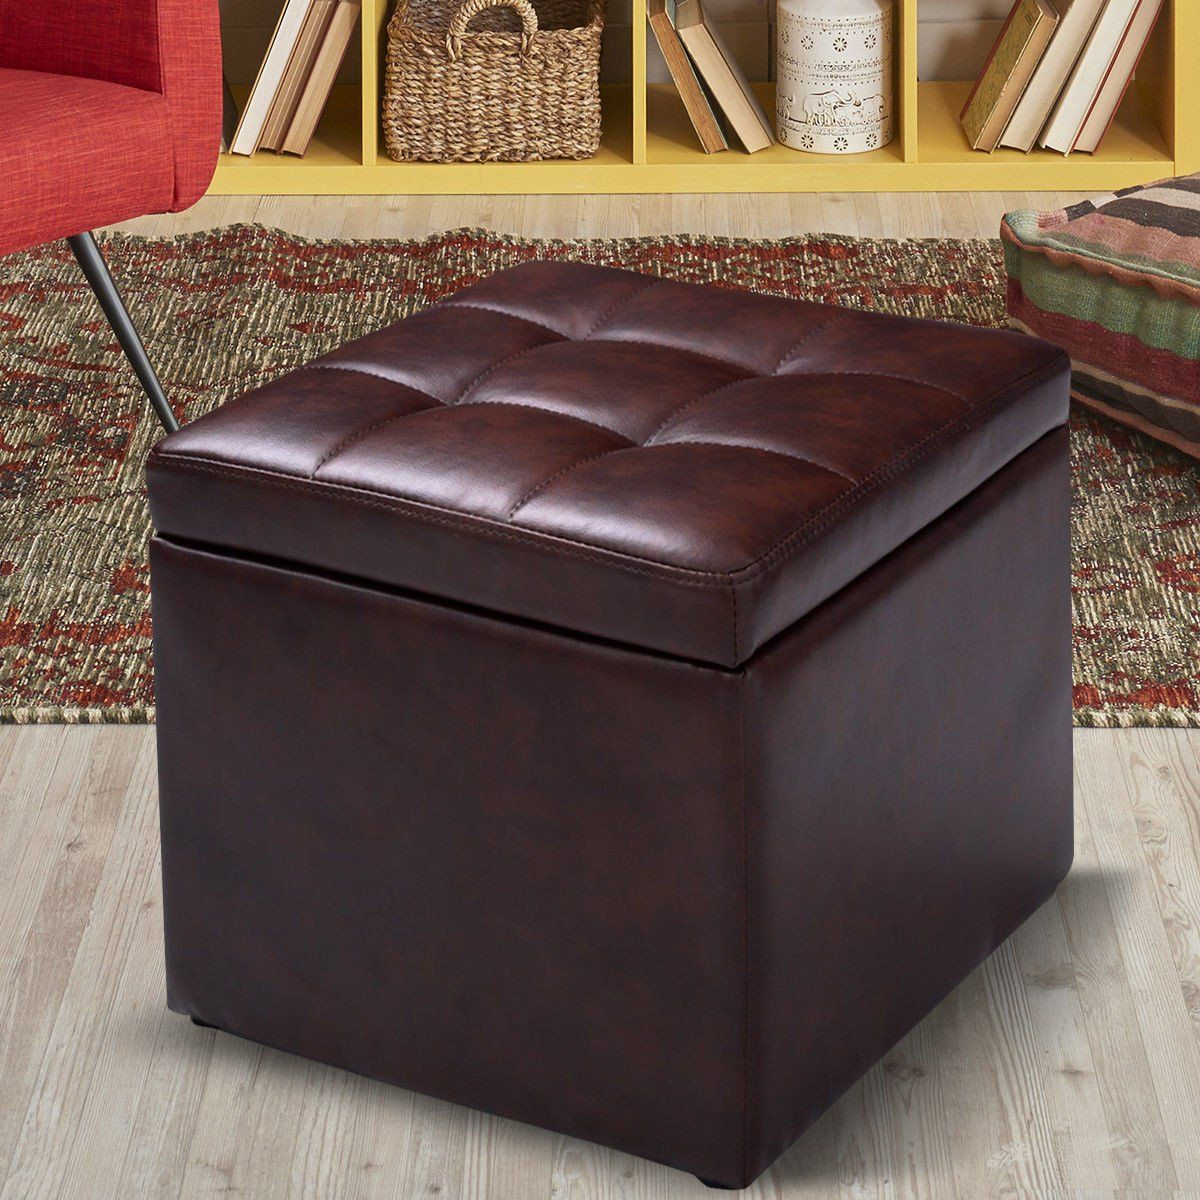 Costway 16 Cube Storage Ottoman With Hinge Top Brown